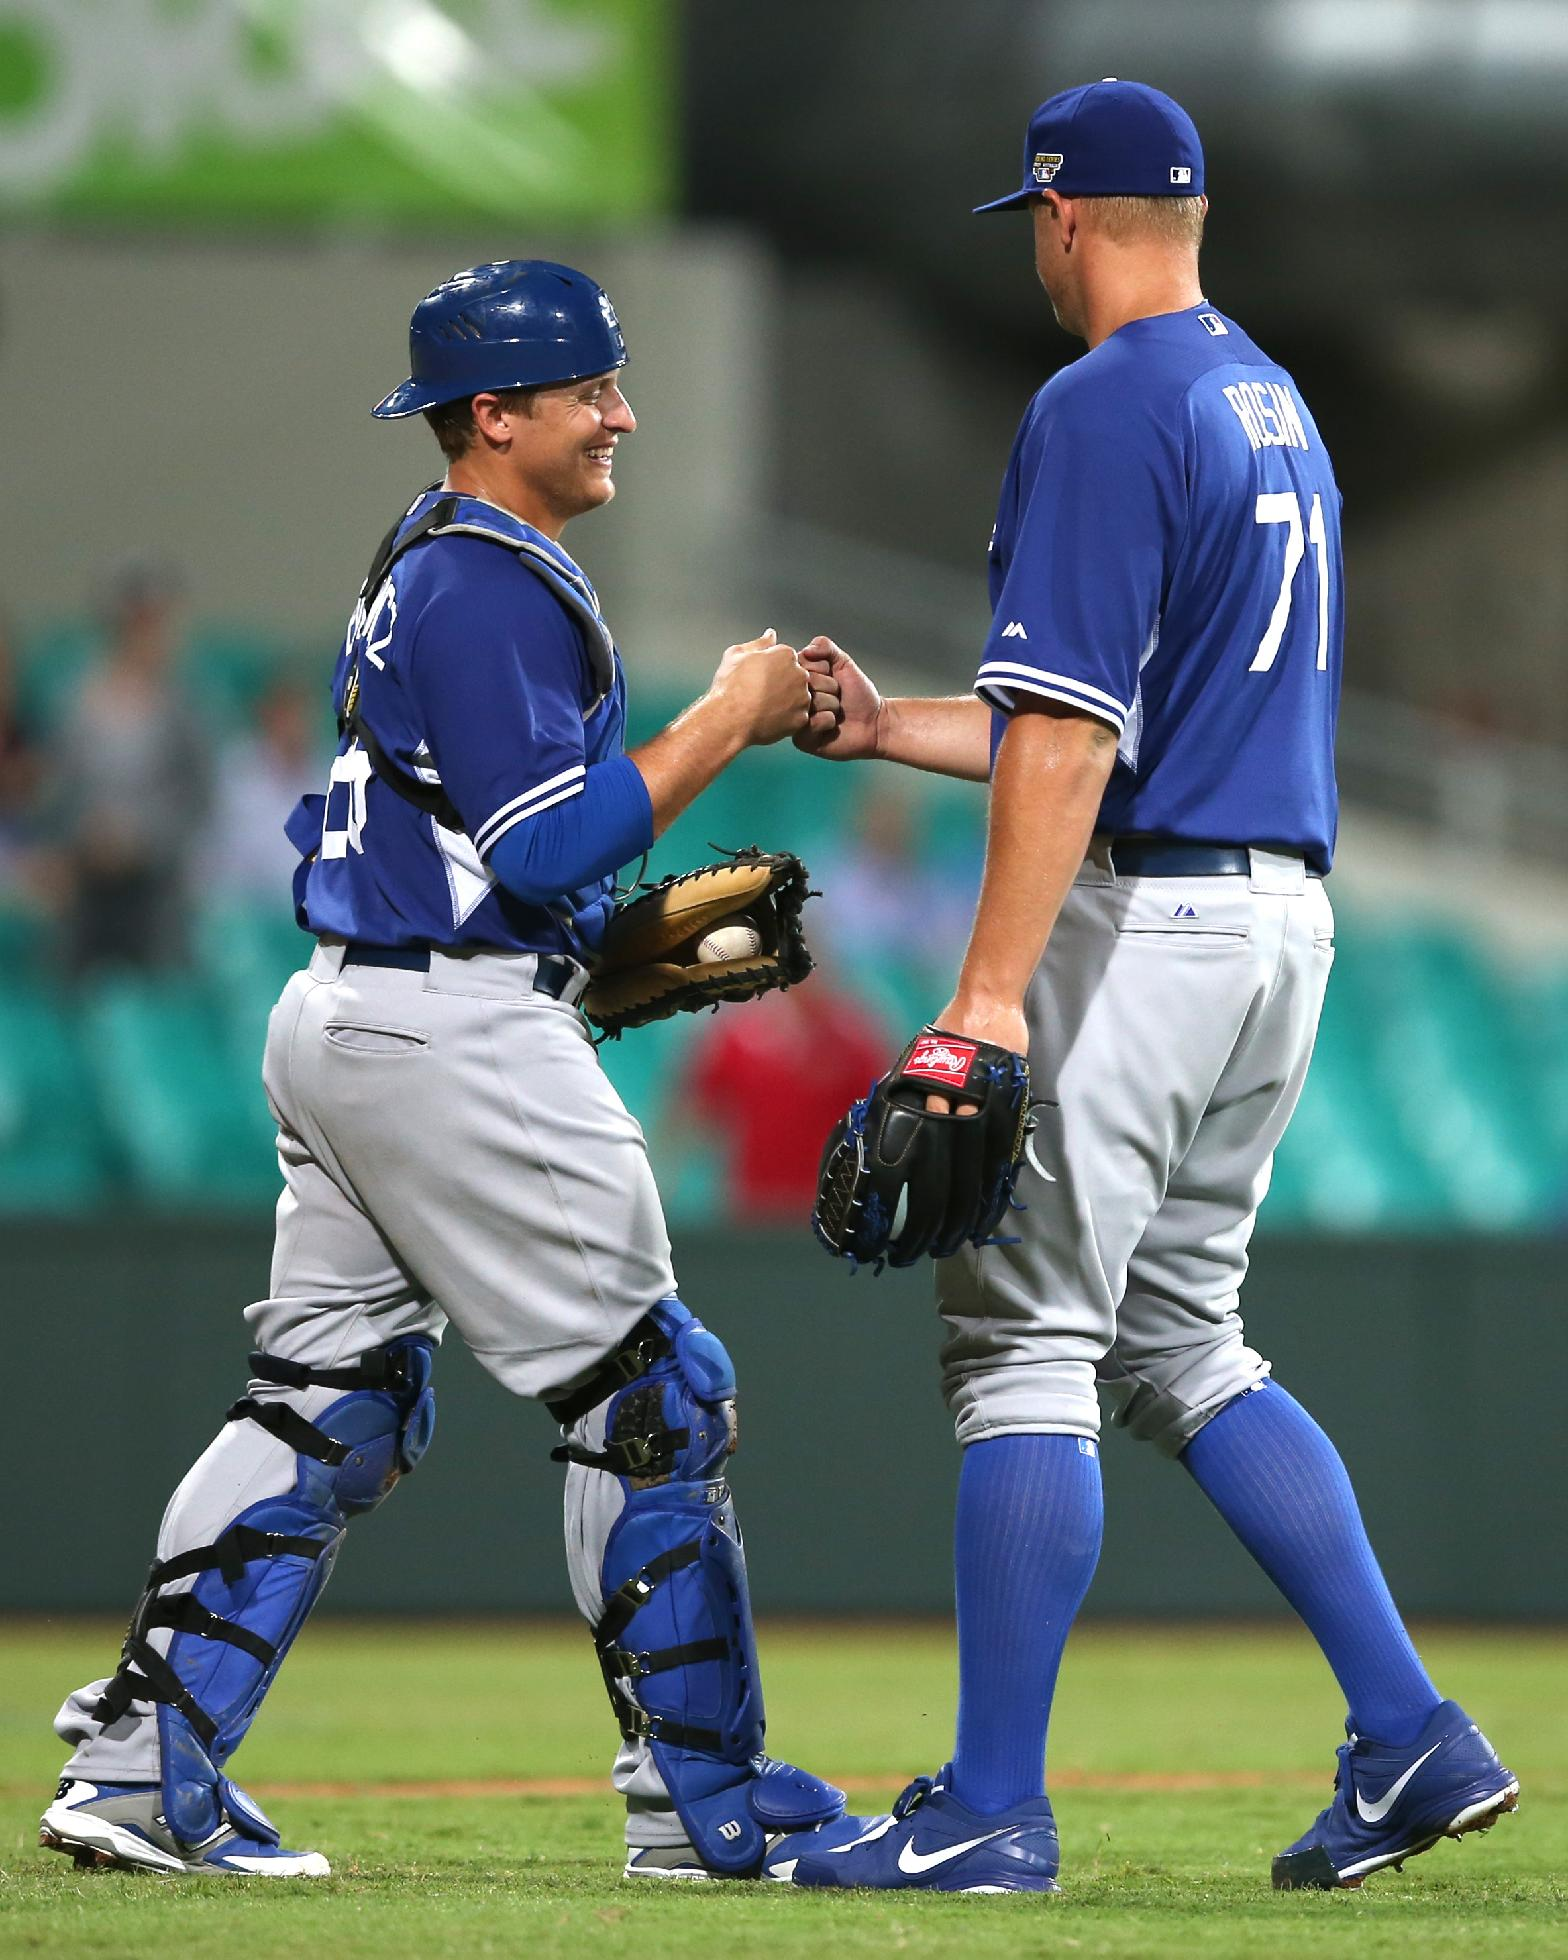 The Los Angles Dodgers' Tim Federowicz, left, and his teammate Seth Rosin, right, congratulate each other after their win in an exhibition baseball game against Team Australia at the Sydney Cricket ground in Sydney, Thursday, March 20, 2014. The Dodgers won the game 4-2